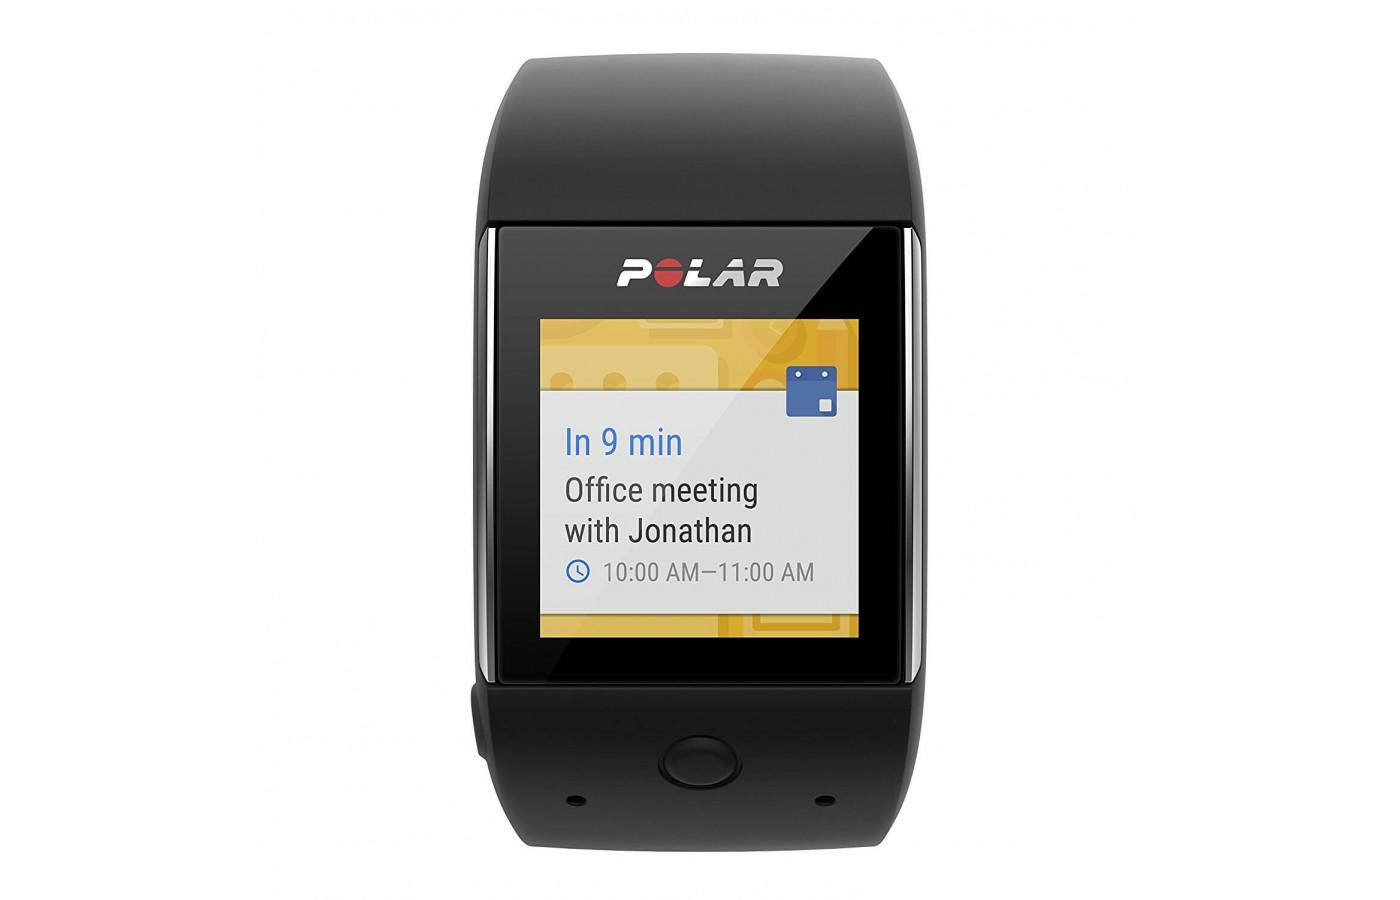 the Polar M600 can be used as both a smartwatch and a fitness tracker